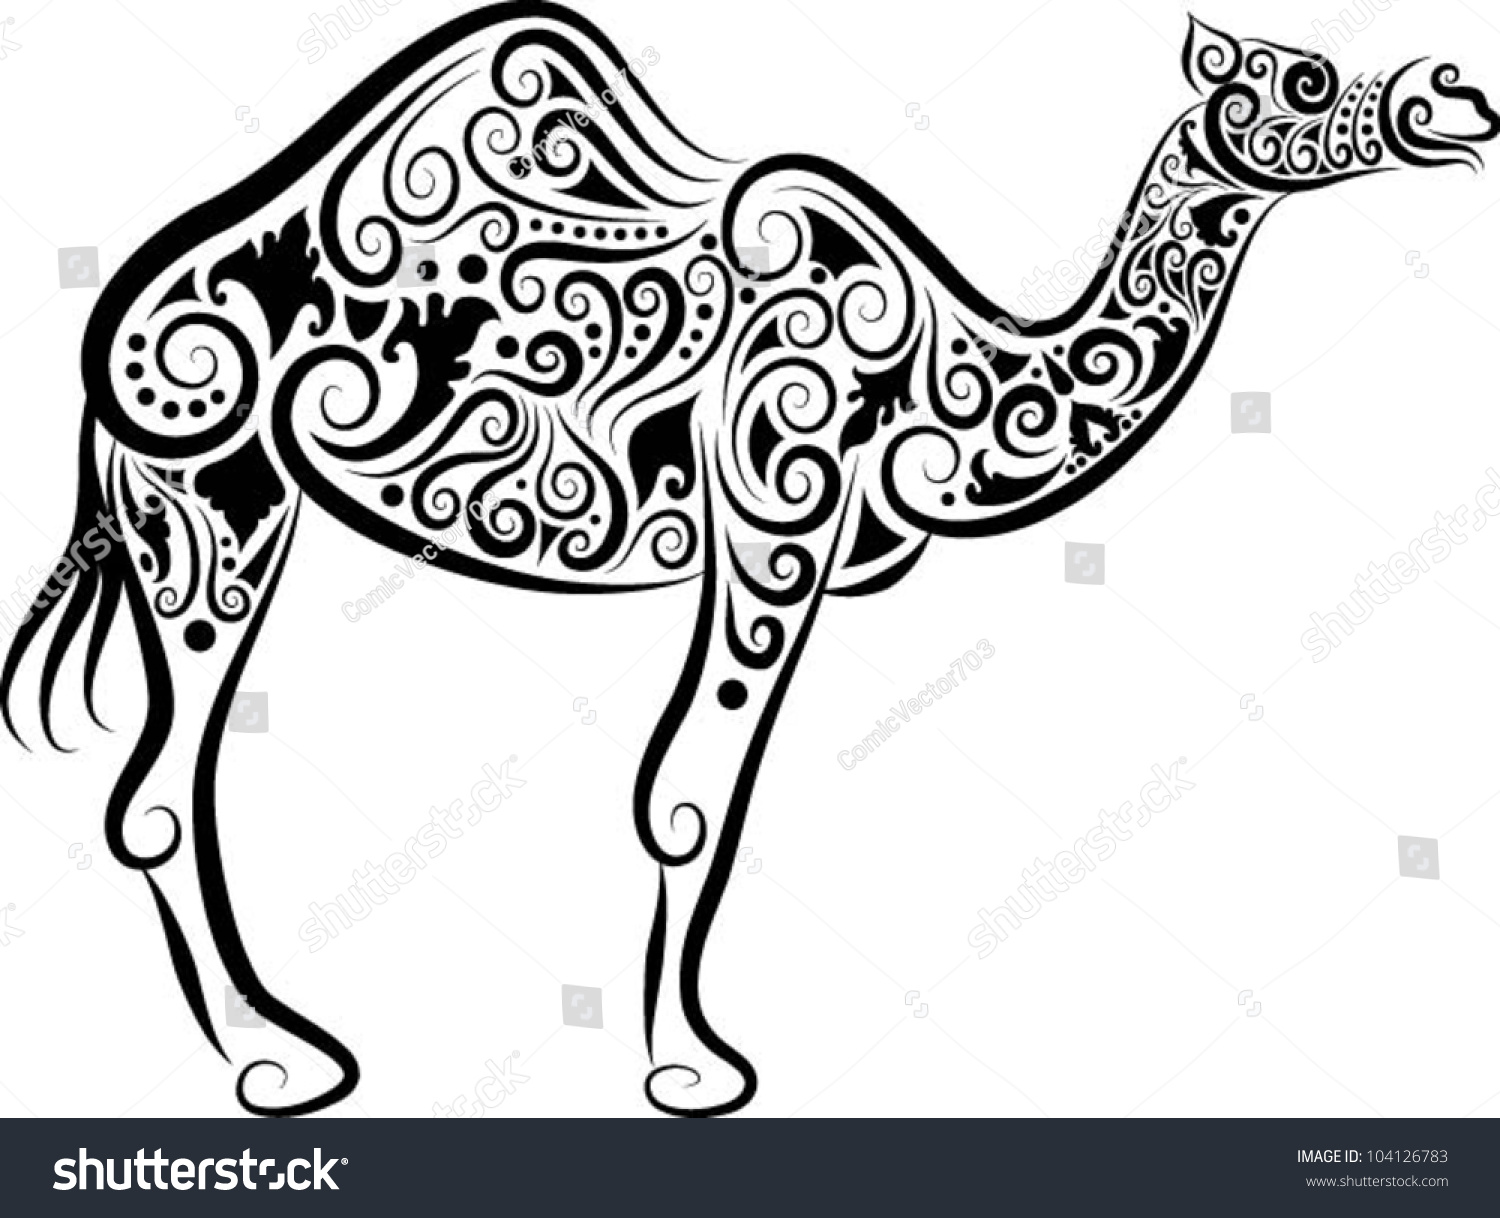 camel decorative ornament animal sketch with floral ornament decoration - Decorative